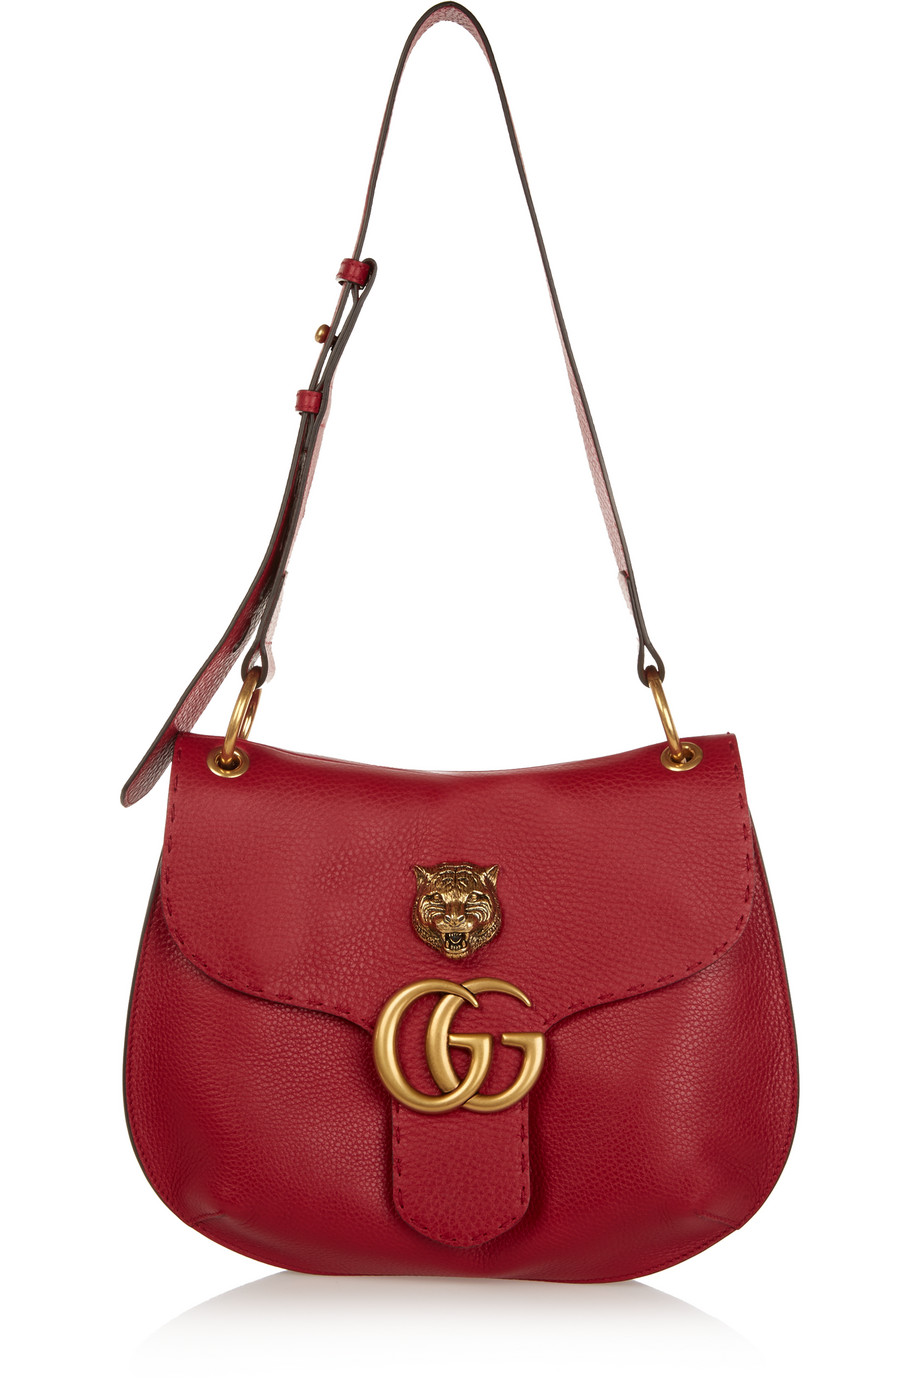 Gucci GG Marmont Textured-Leather Shoulder Bag, Red, Women's